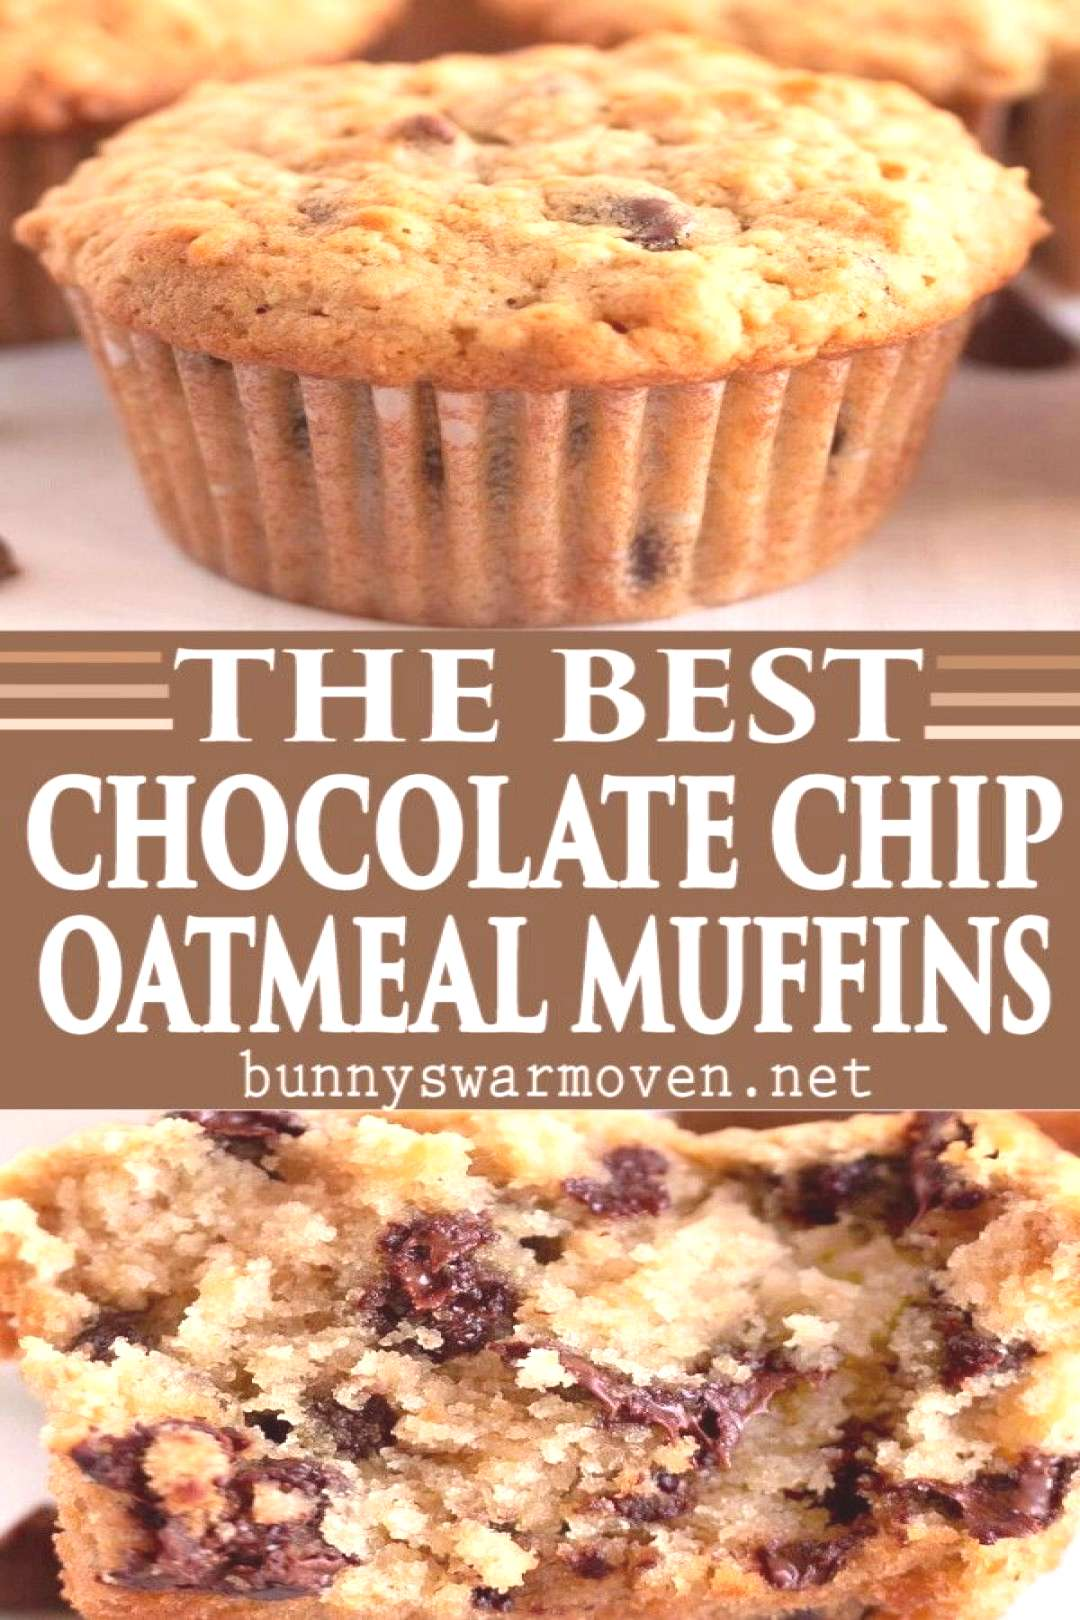 OATMEAL CHOCOLATE CHIP MUFFINS - Oatmeal Chocolate Chip Muffins are perfect for breakfast, snacks